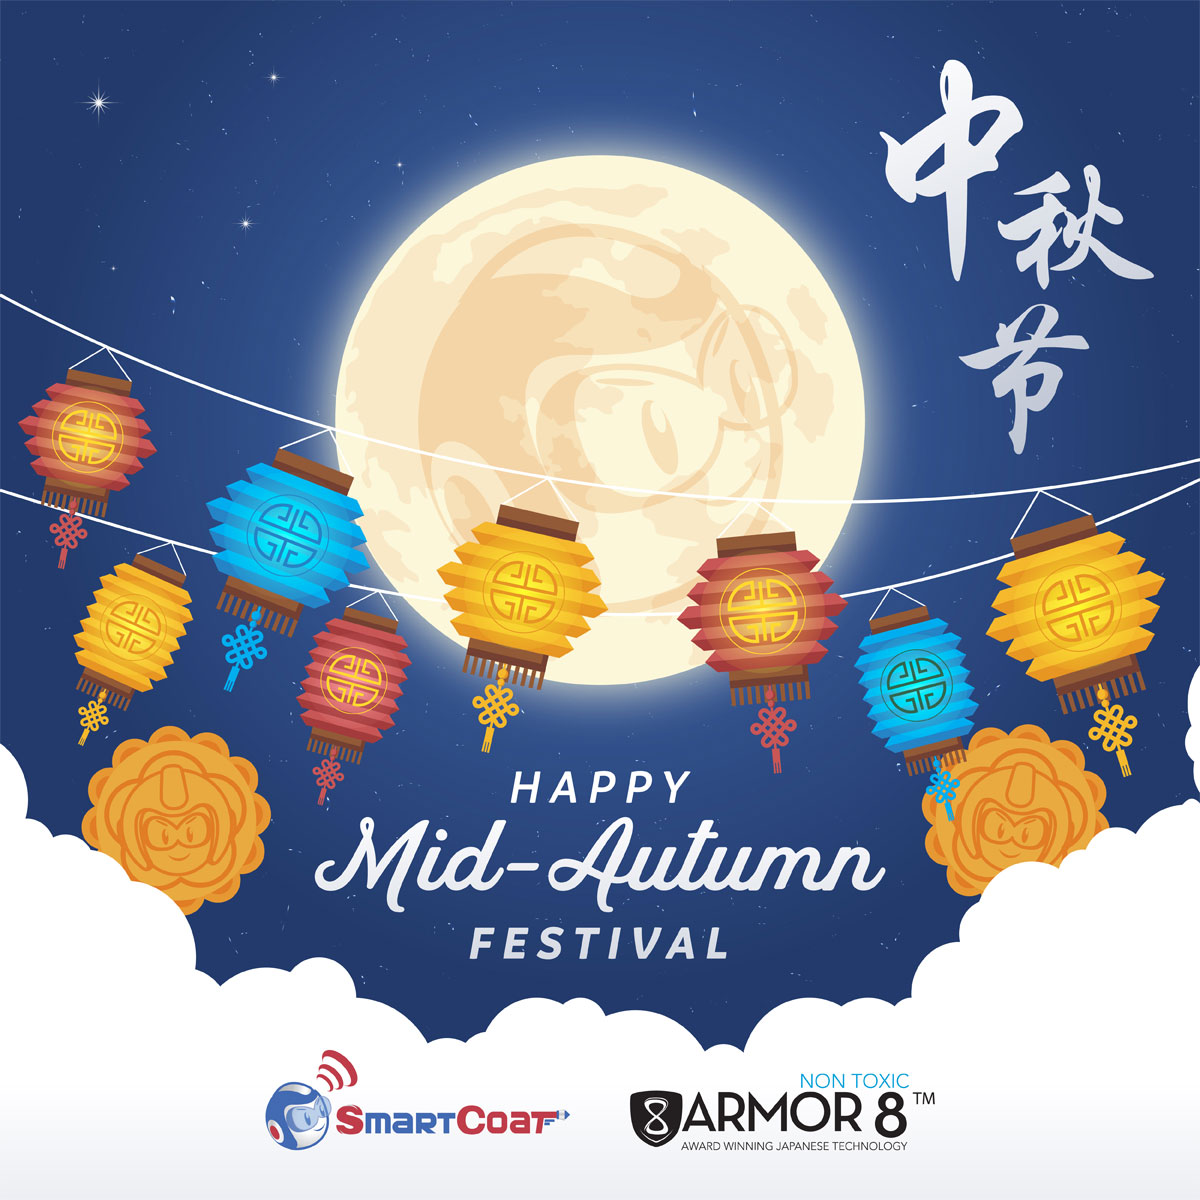 SmartCoat and Armor8 Happy Mid-Autumn Festival 2018 Facebook Post Design 04